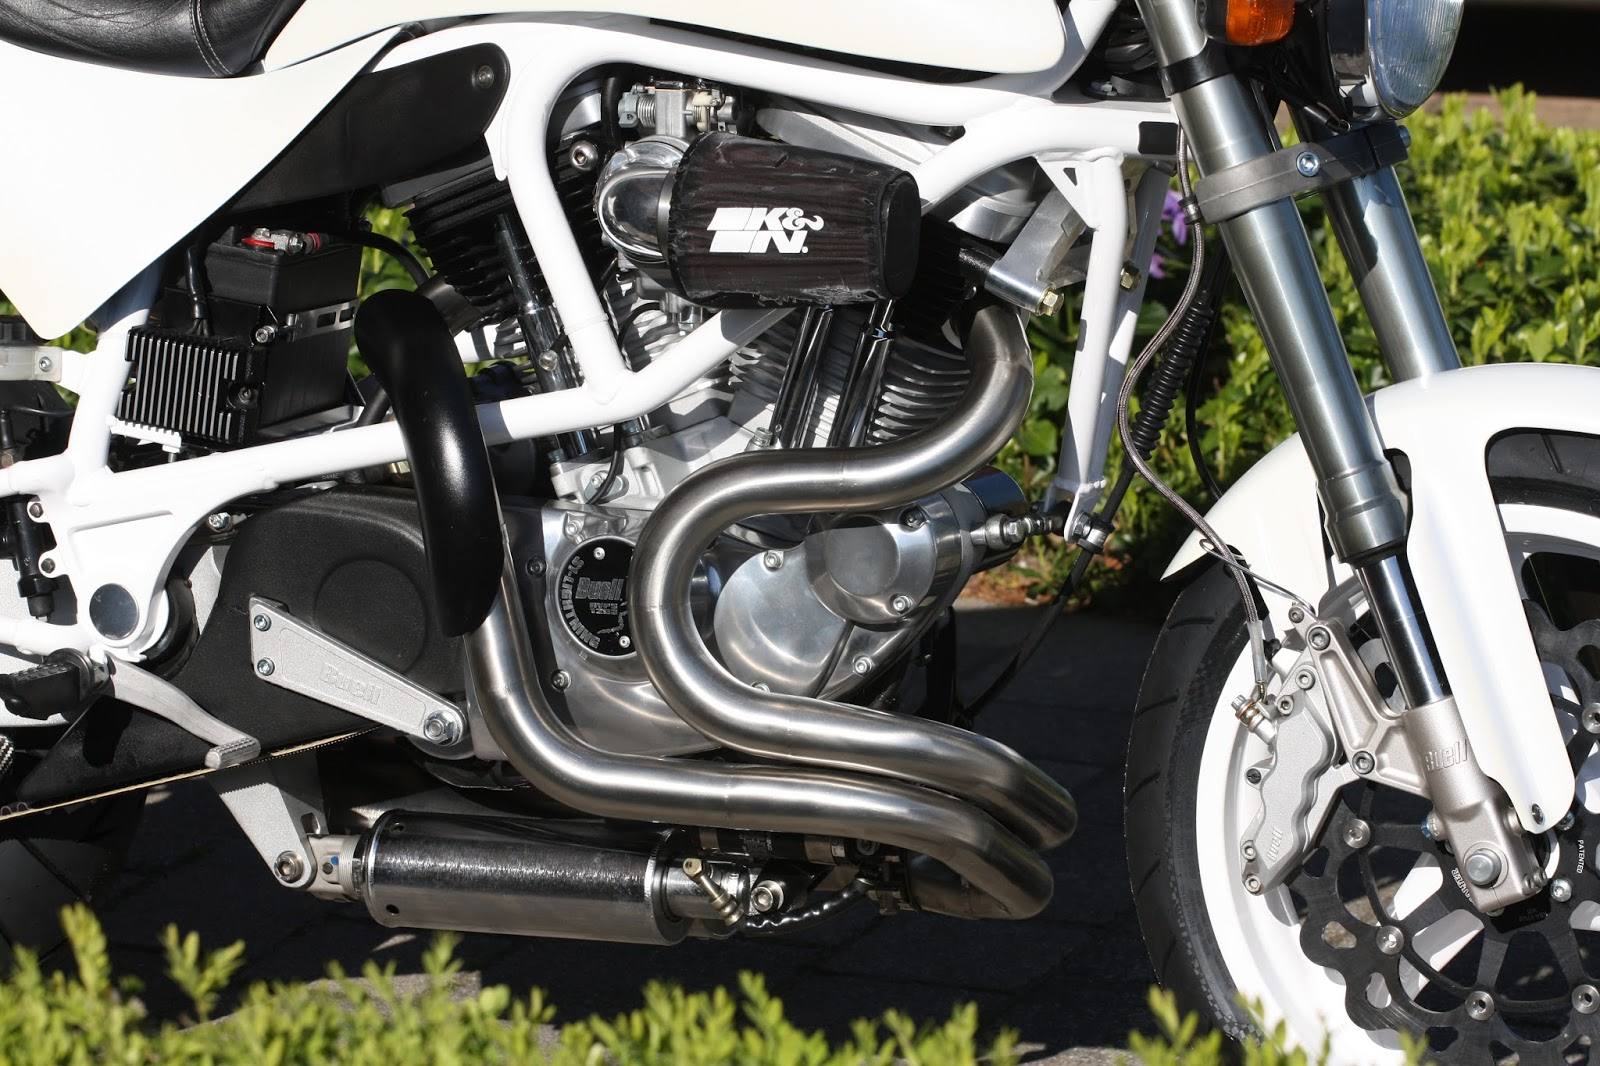 DD Motorcycles: BUELL S1W NUTS AND BOLTS RESTORATION